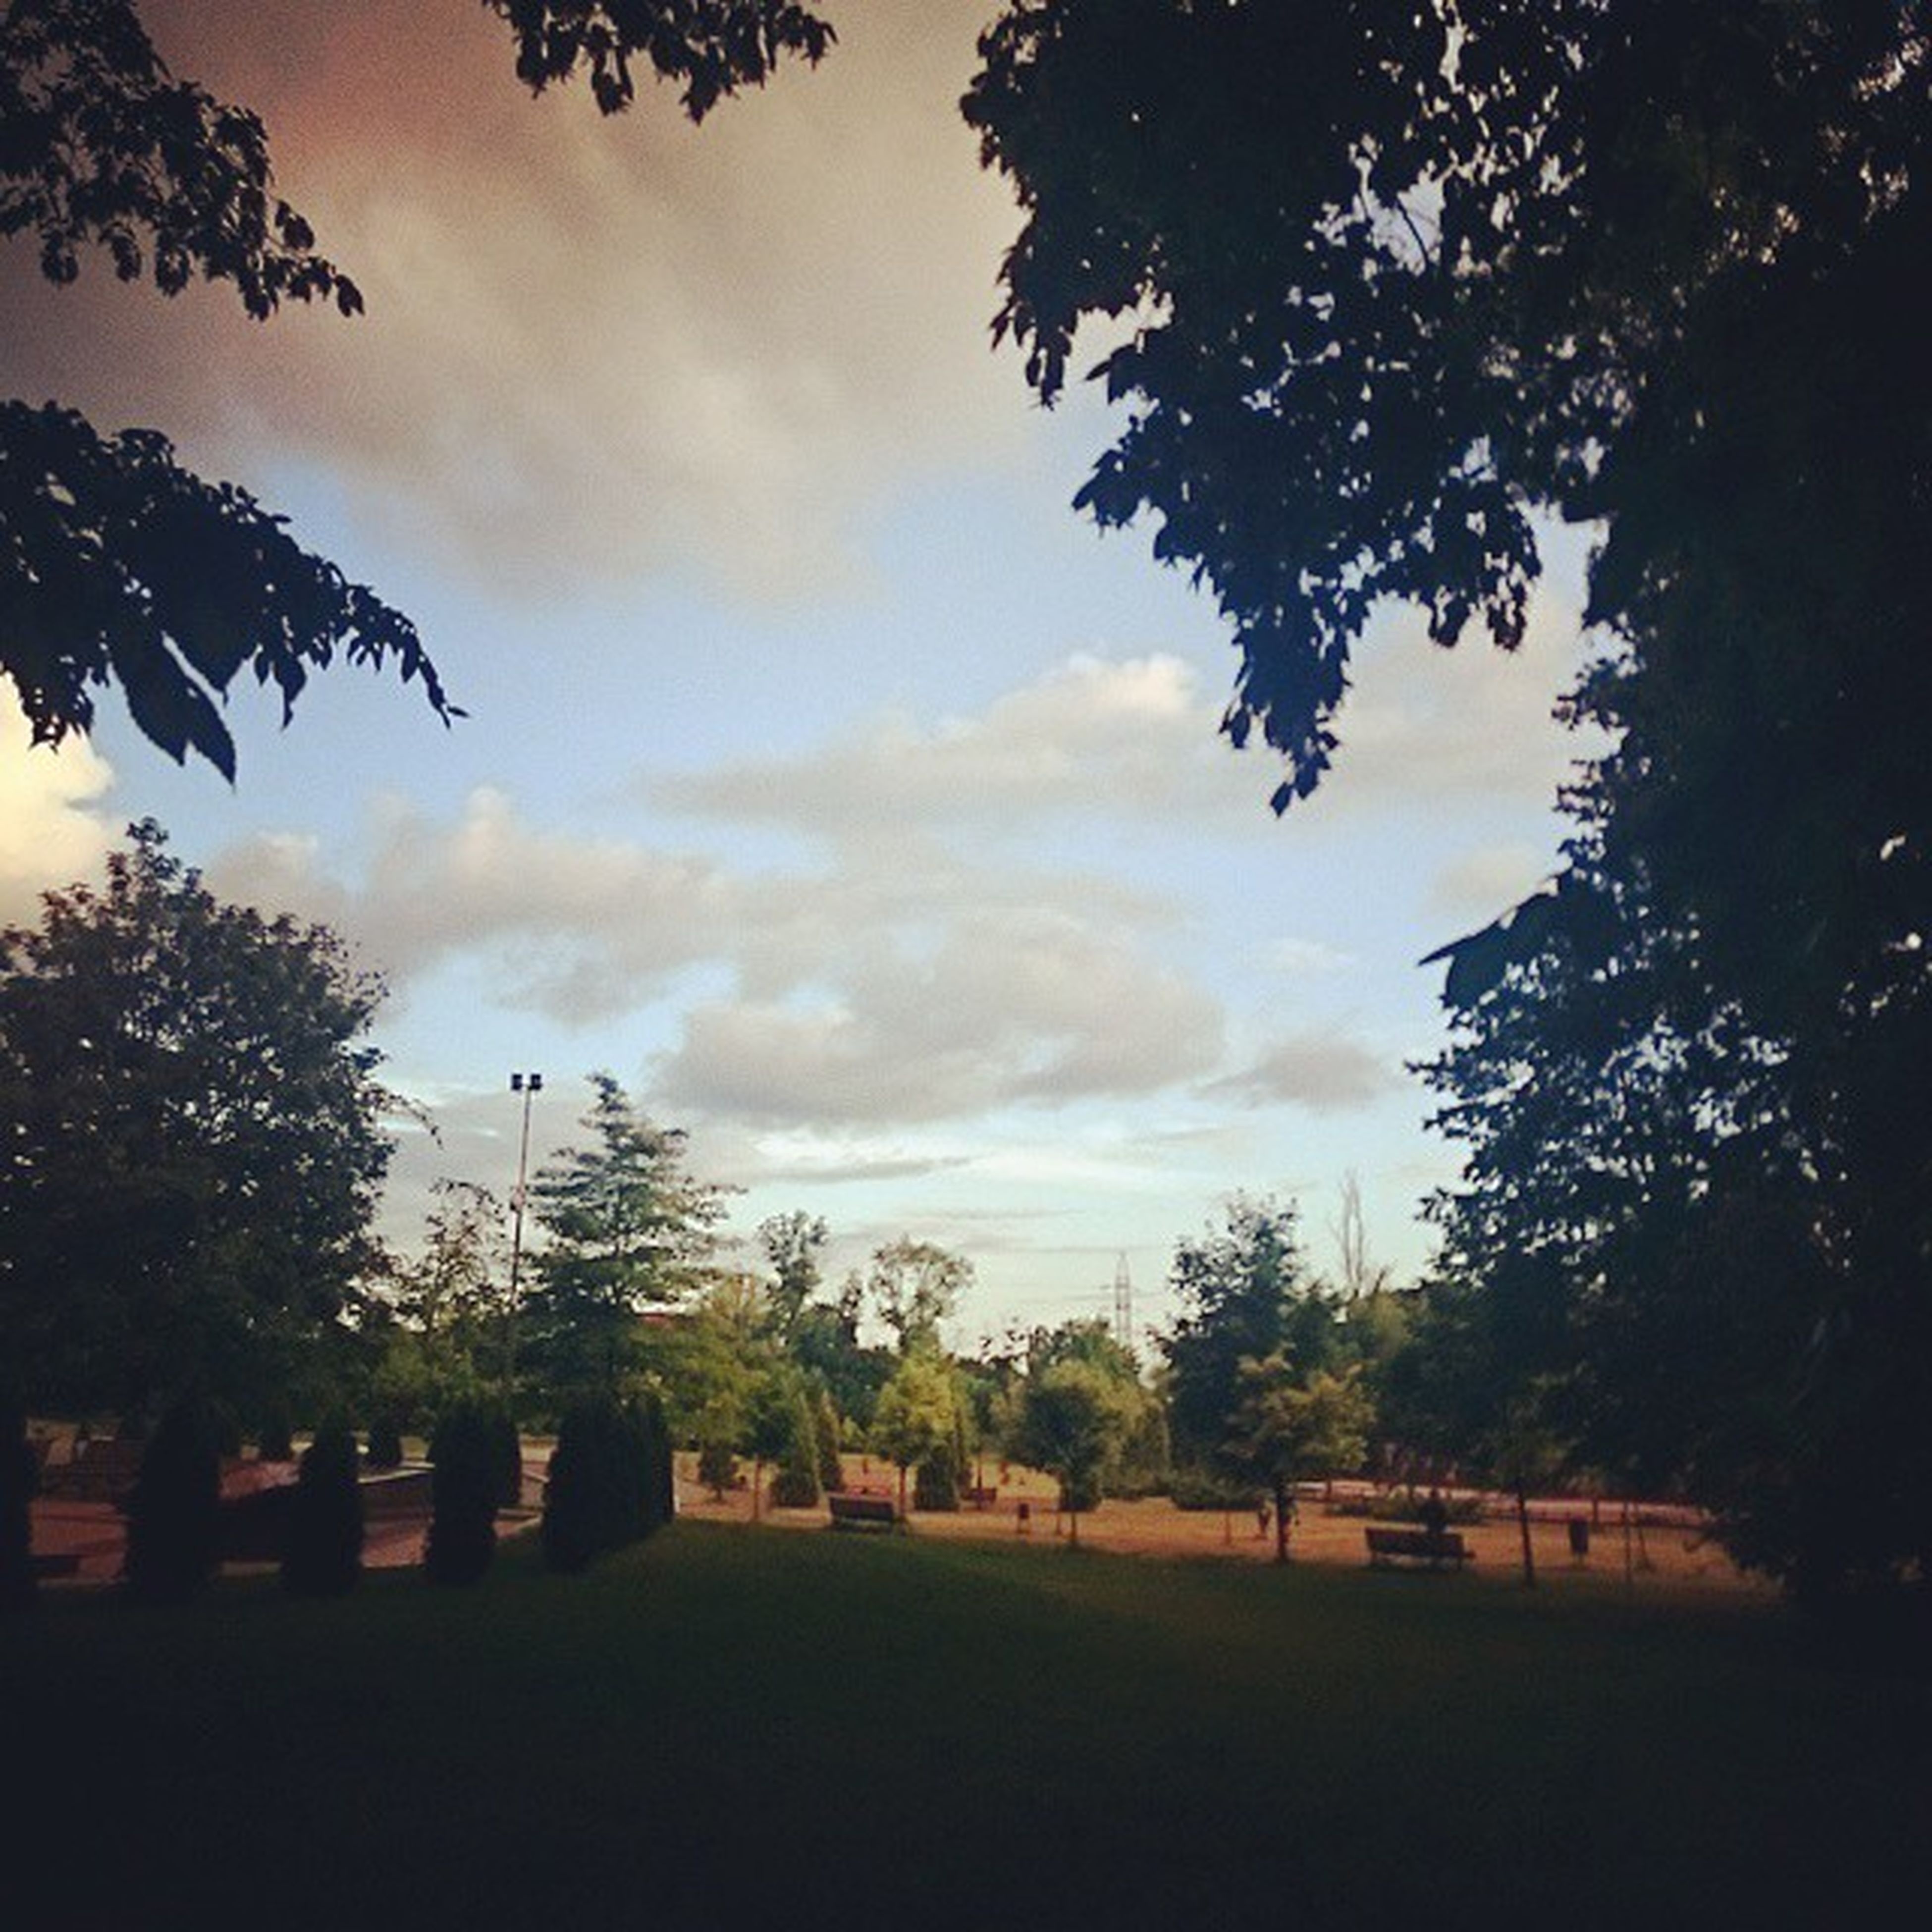 tree, sky, cloud - sky, cloudy, tranquility, tranquil scene, nature, silhouette, scenics, cloud, beauty in nature, growth, landscape, field, branch, park - man made space, sunset, overcast, outdoors, weather